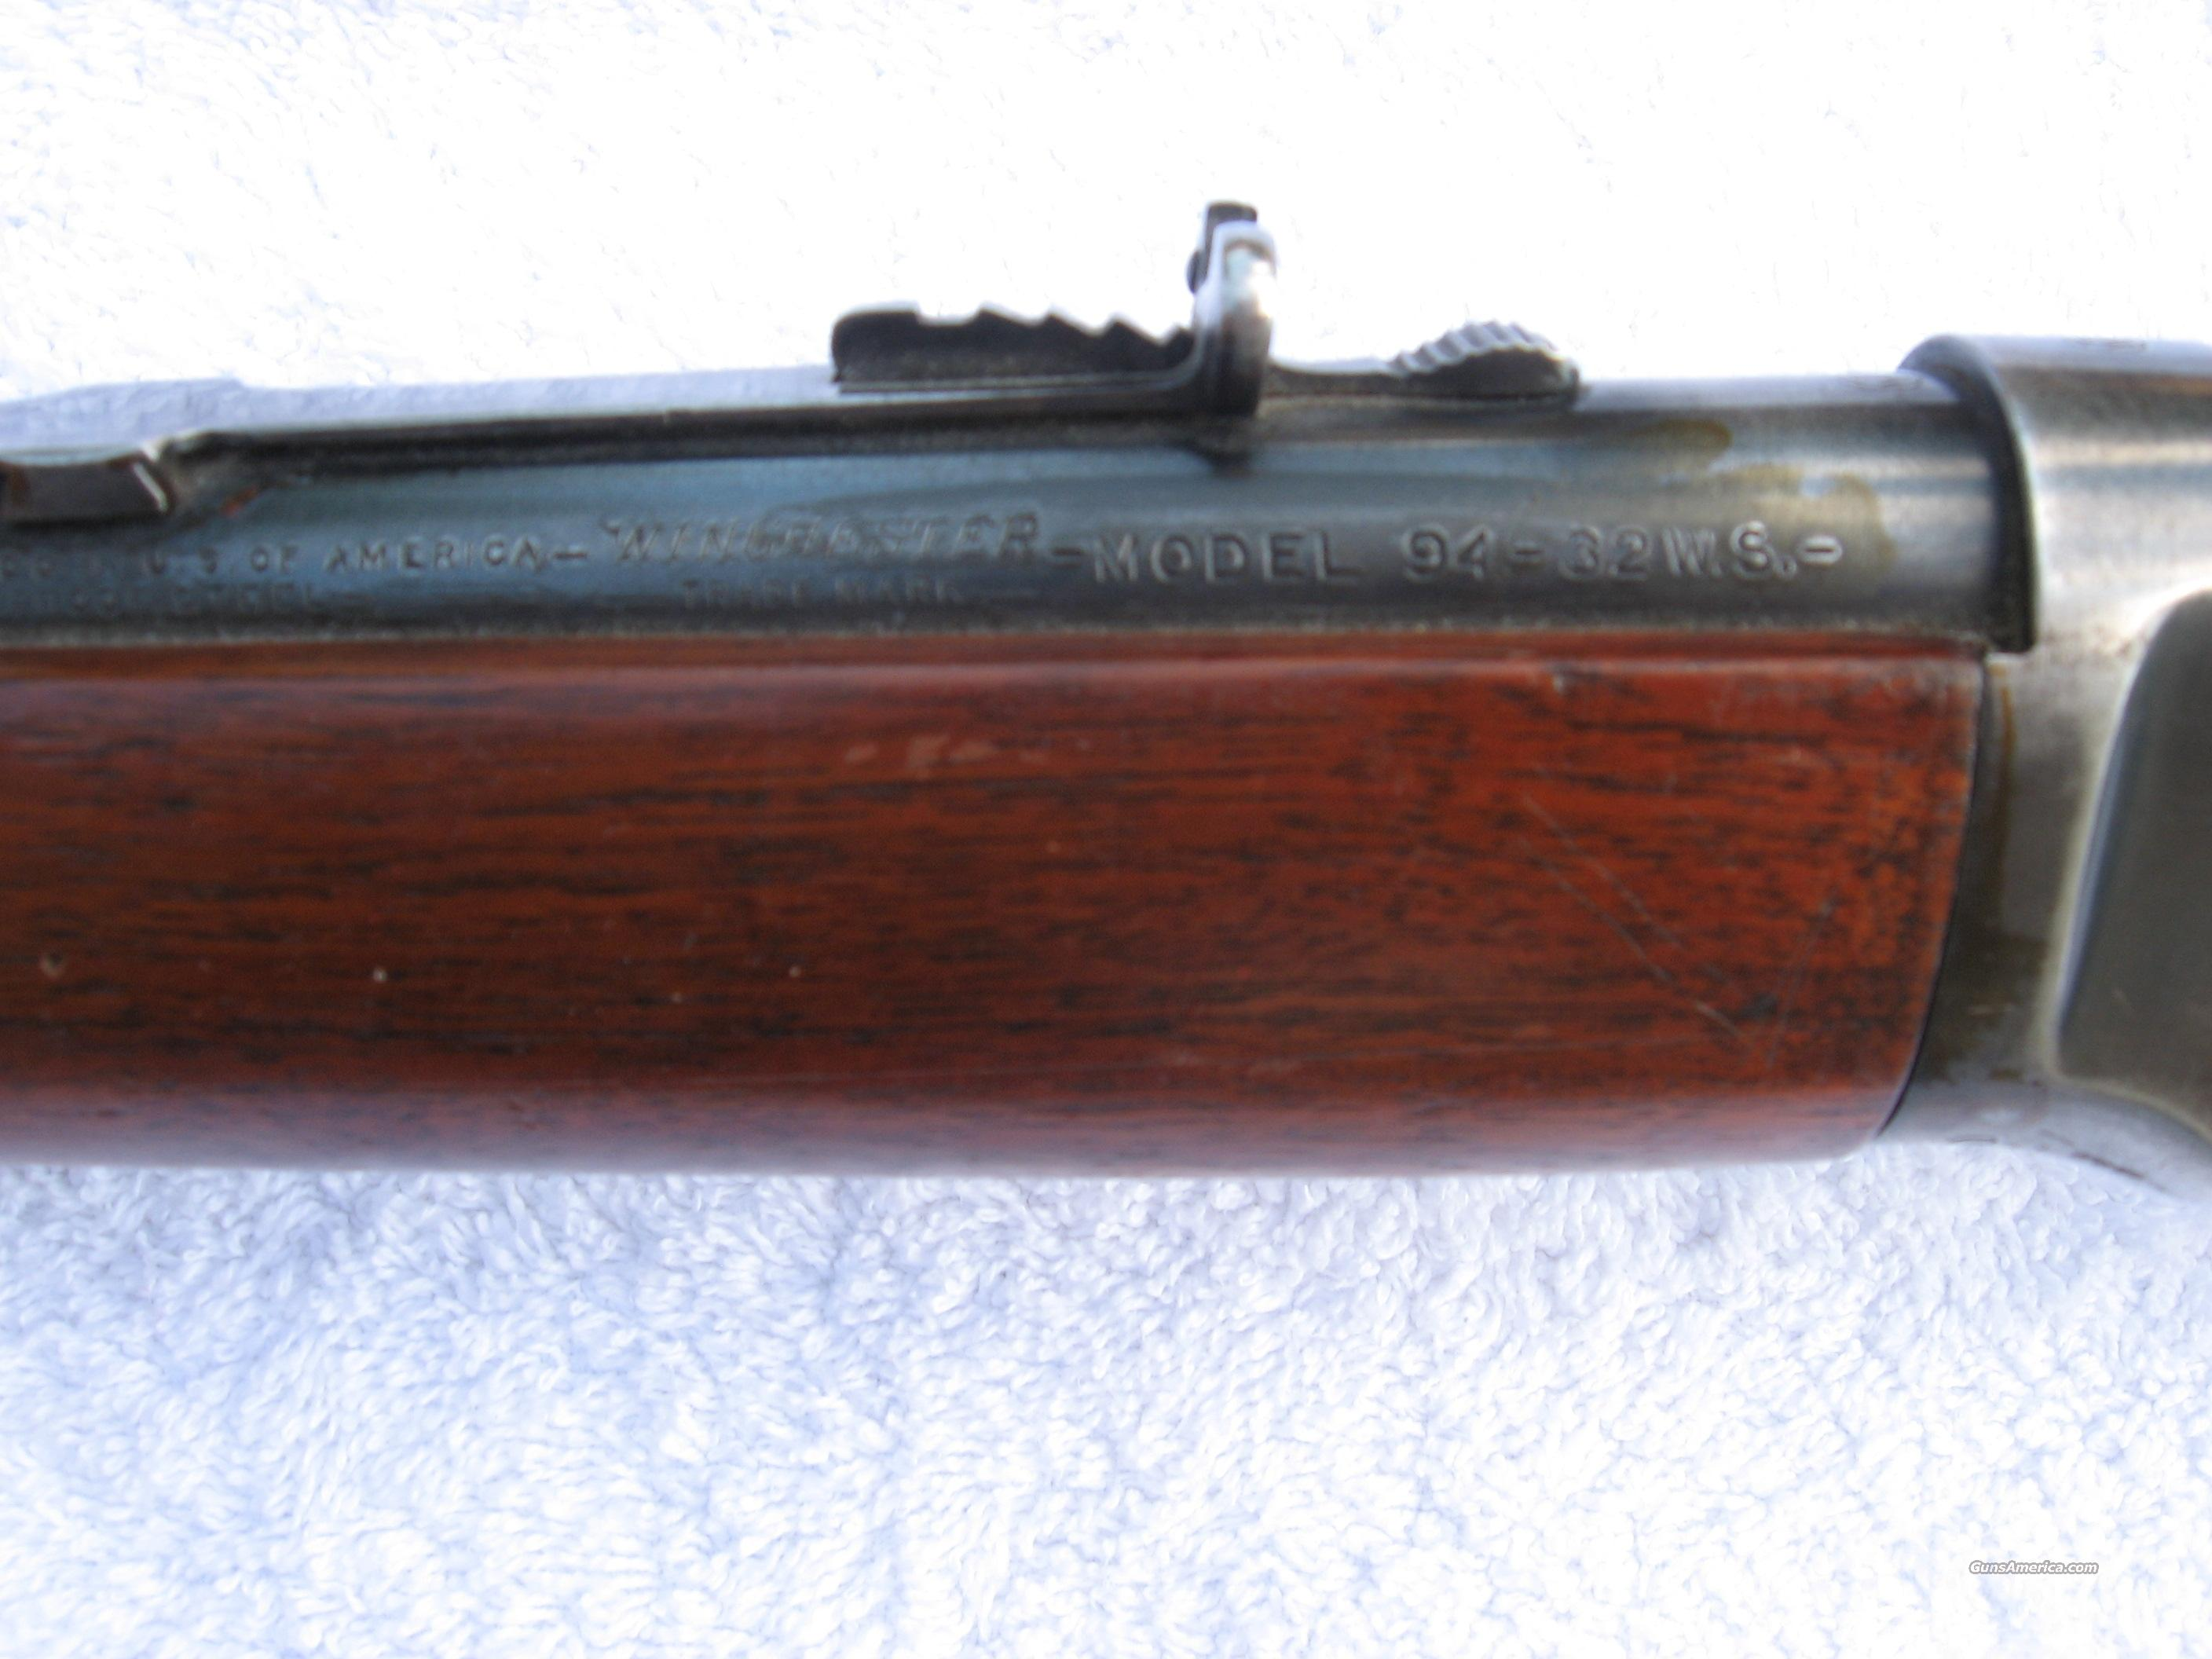 Winchester 94 32WS  Guns > Rifles > Winchester Rifles - Modern Lever > Other Lever > Pre-64